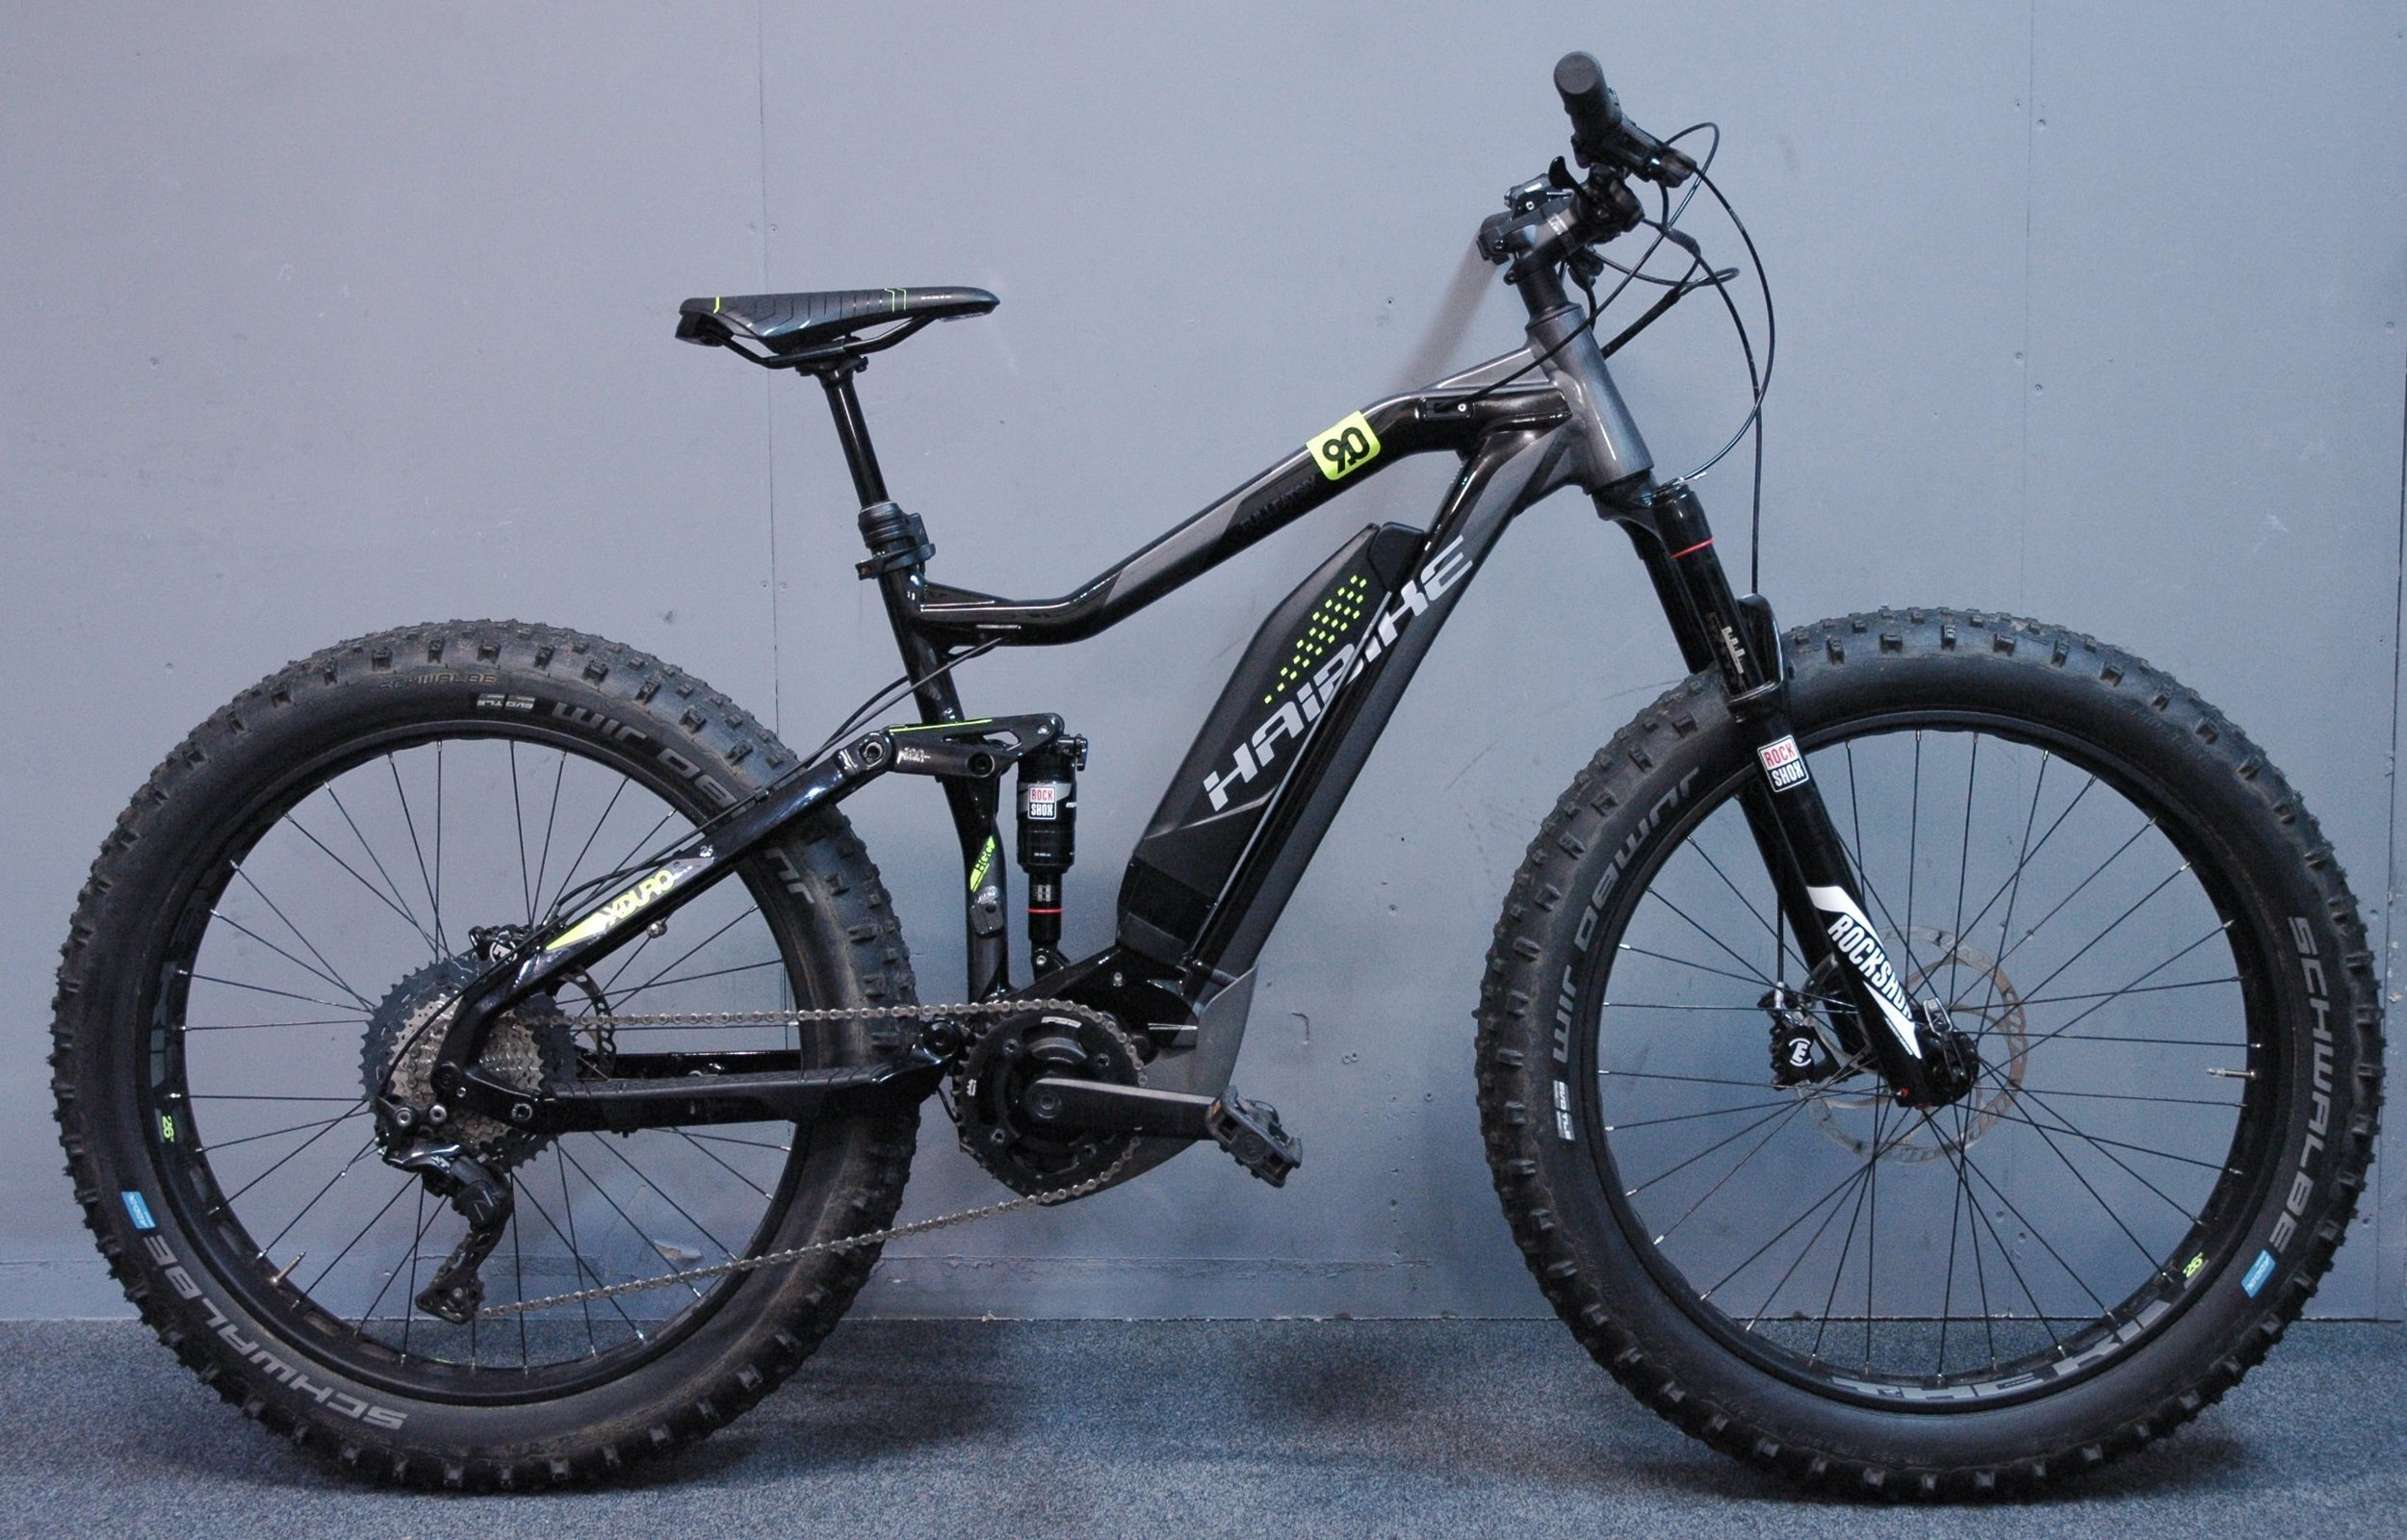 Haibike FatSix Electric Mountain Bike- Medium Size Frame   25-50 mile battery range for all day rides on the beach